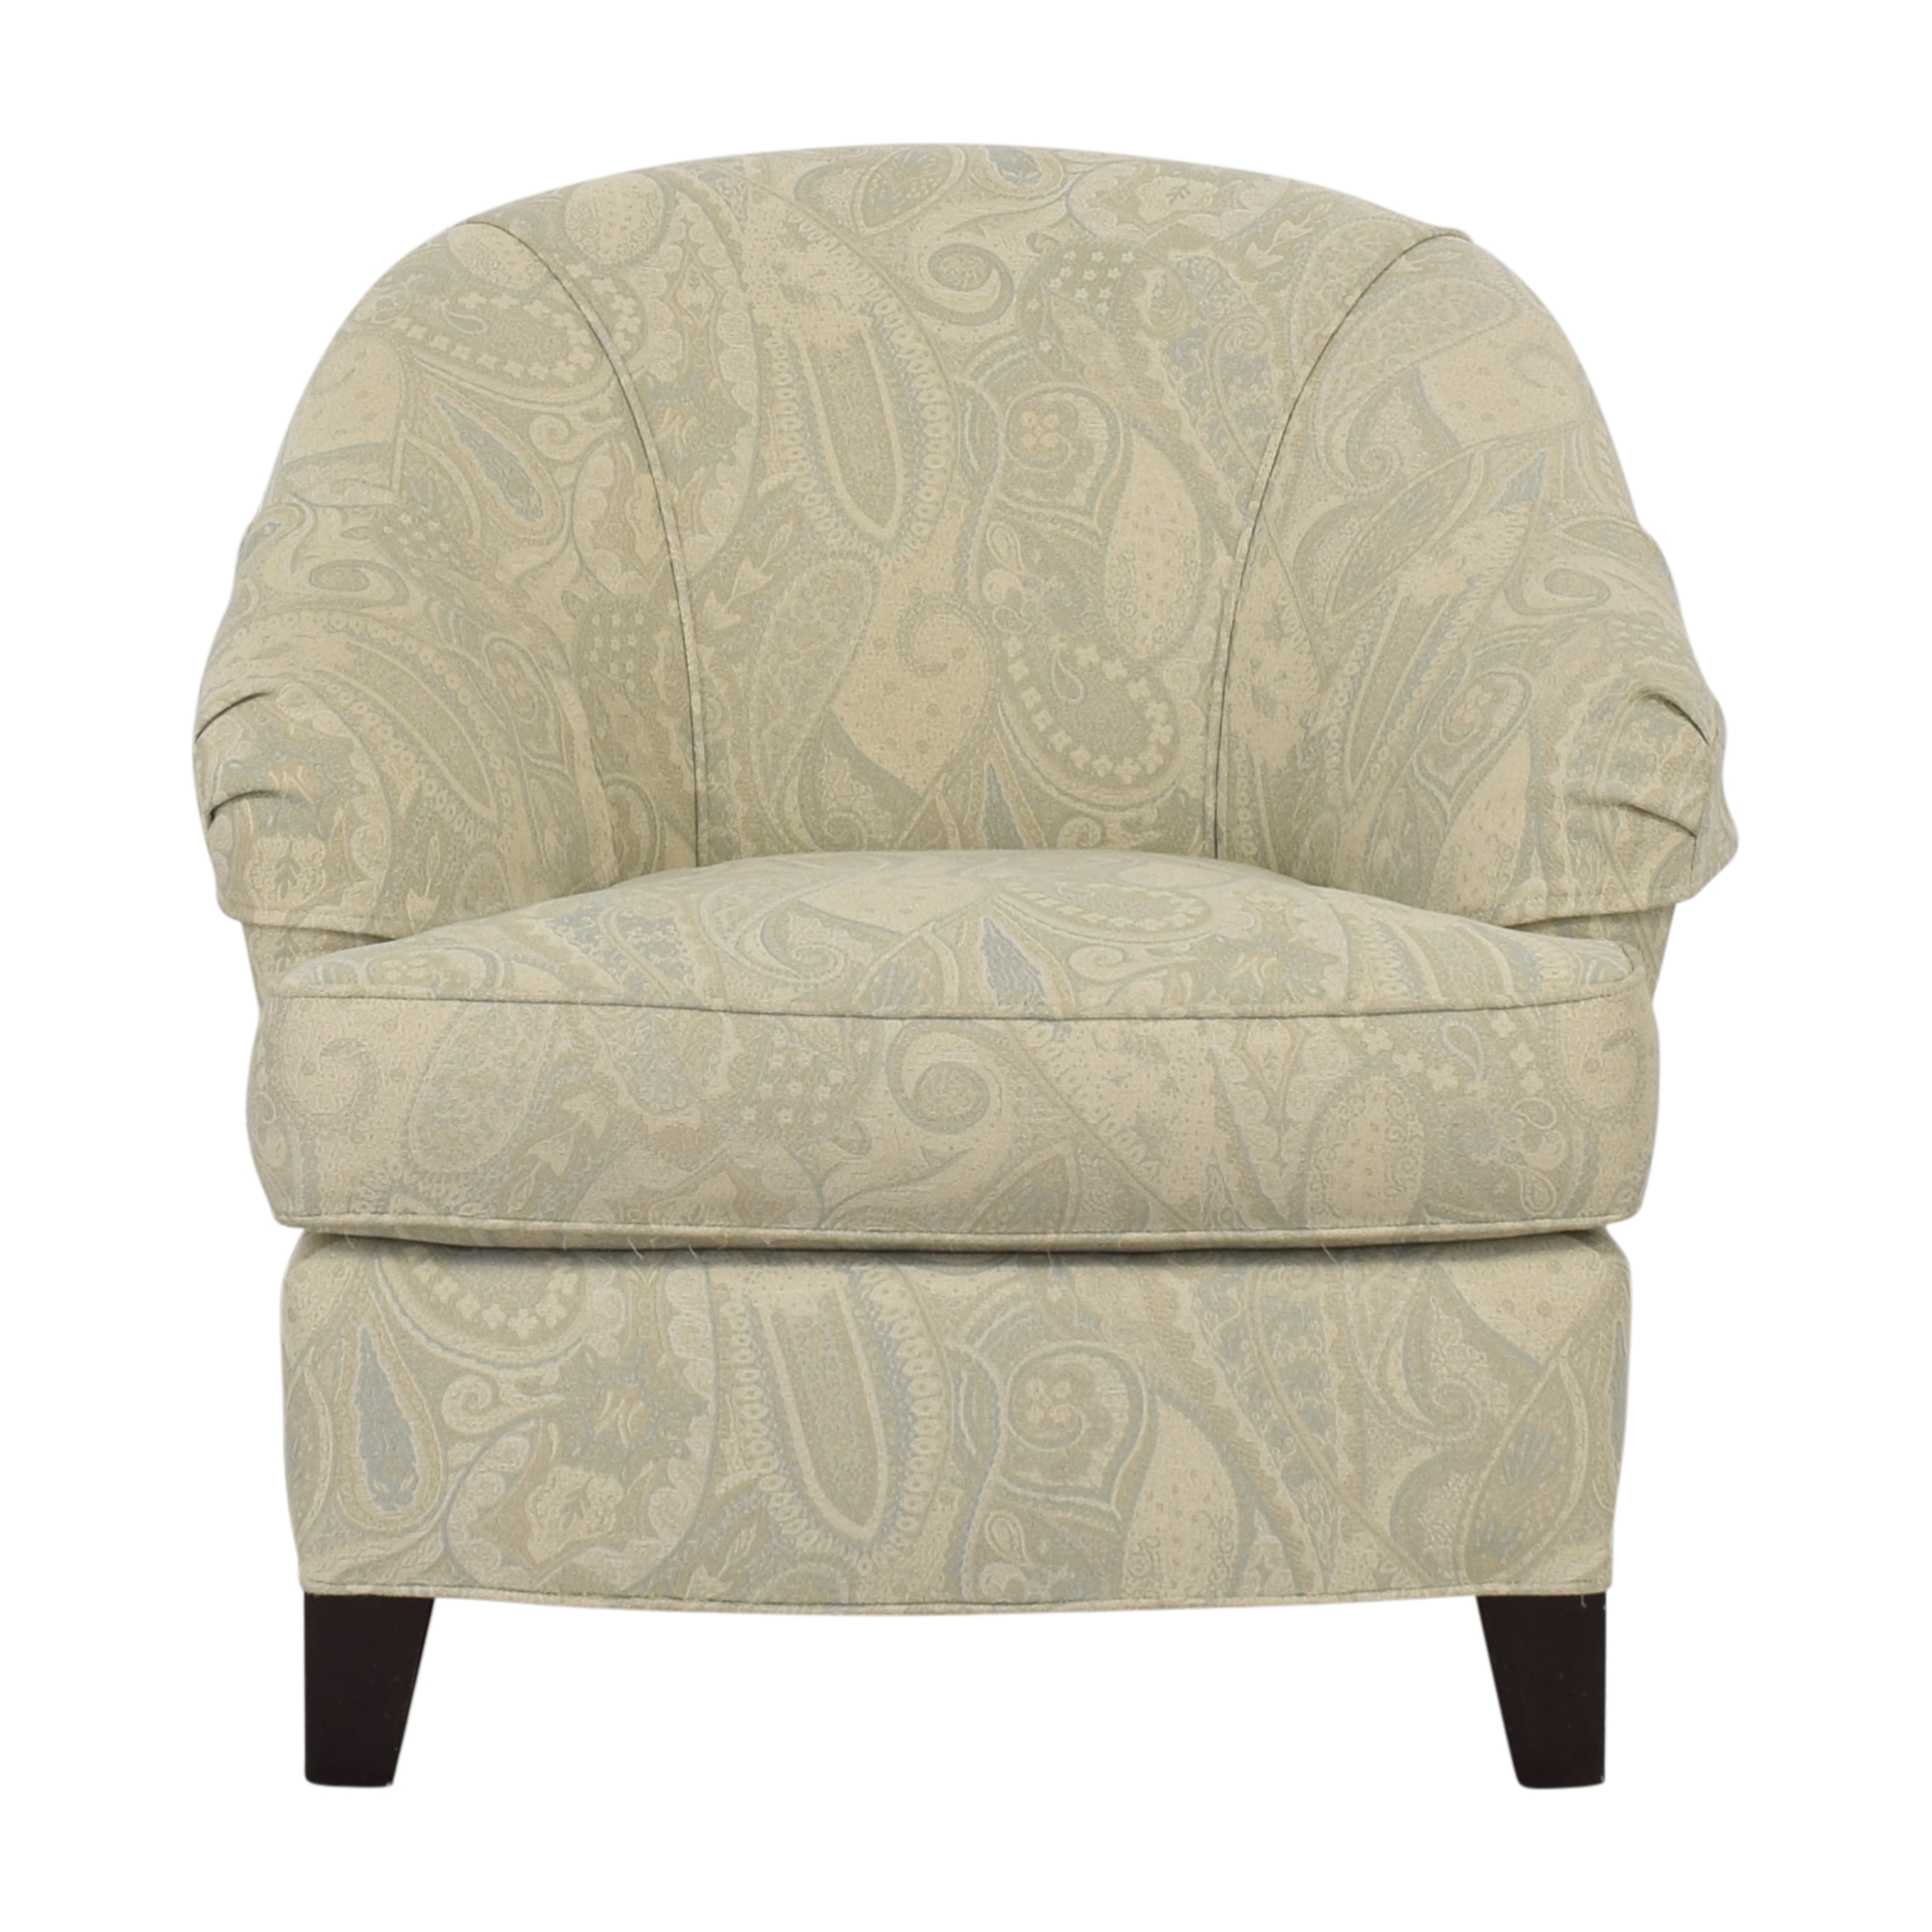 buy Ethan Allen Ethan Allen Peyton Fabric Chair online